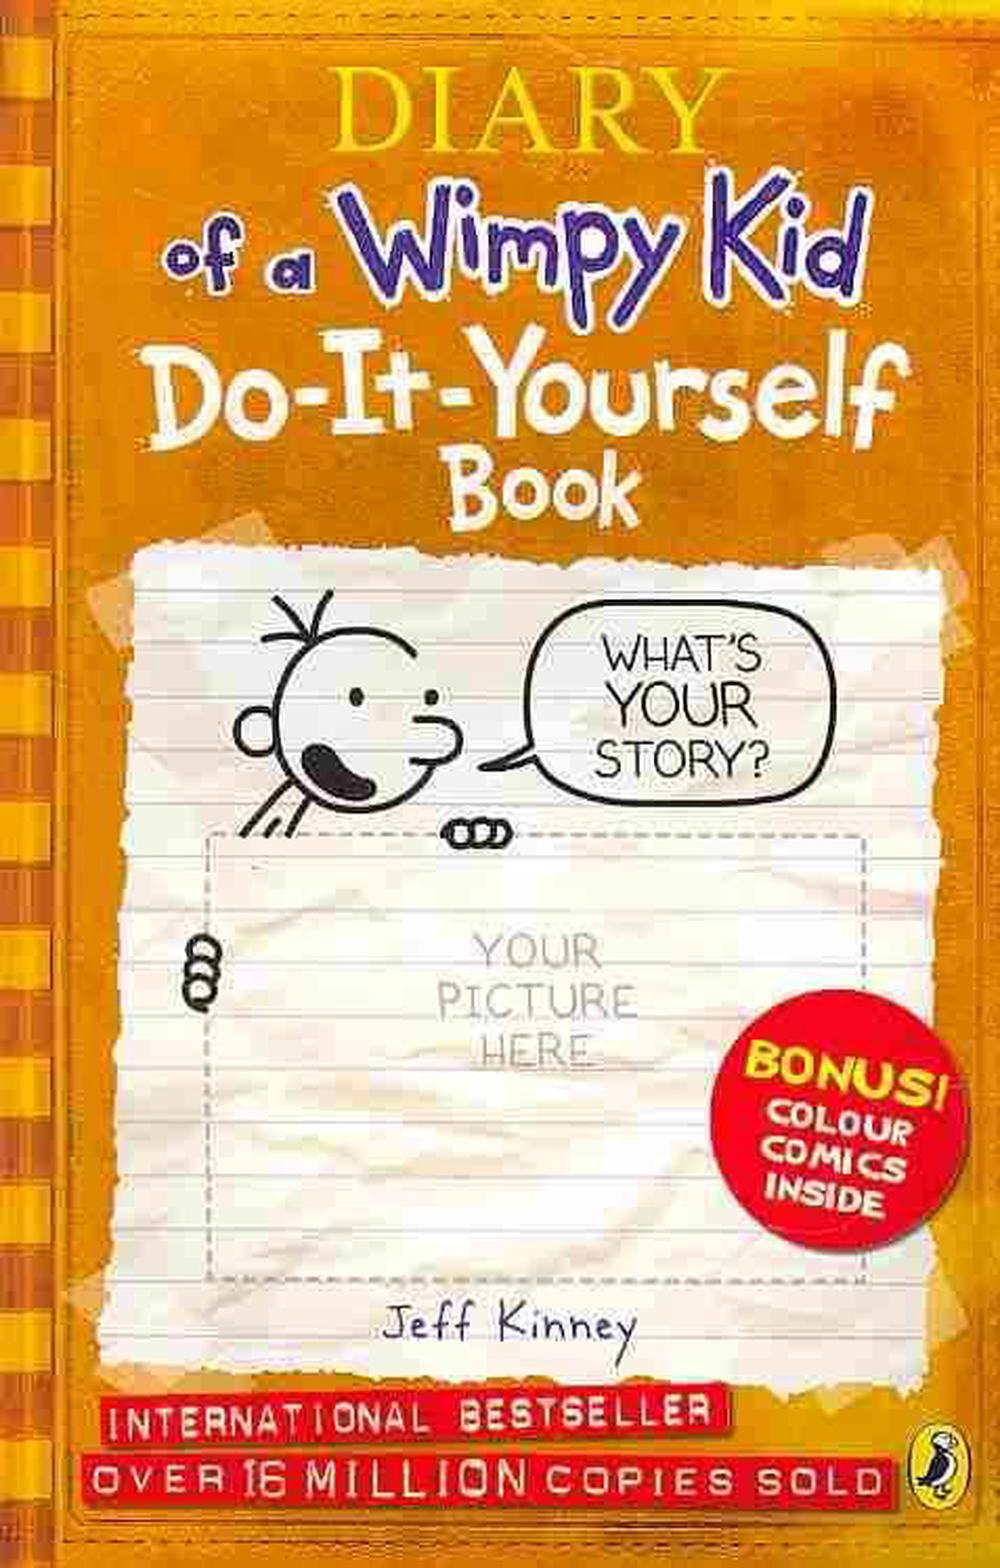 Do it yourself book by jeff kinney paperback 9780141327679 buy do it yourself book solutioingenieria Gallery